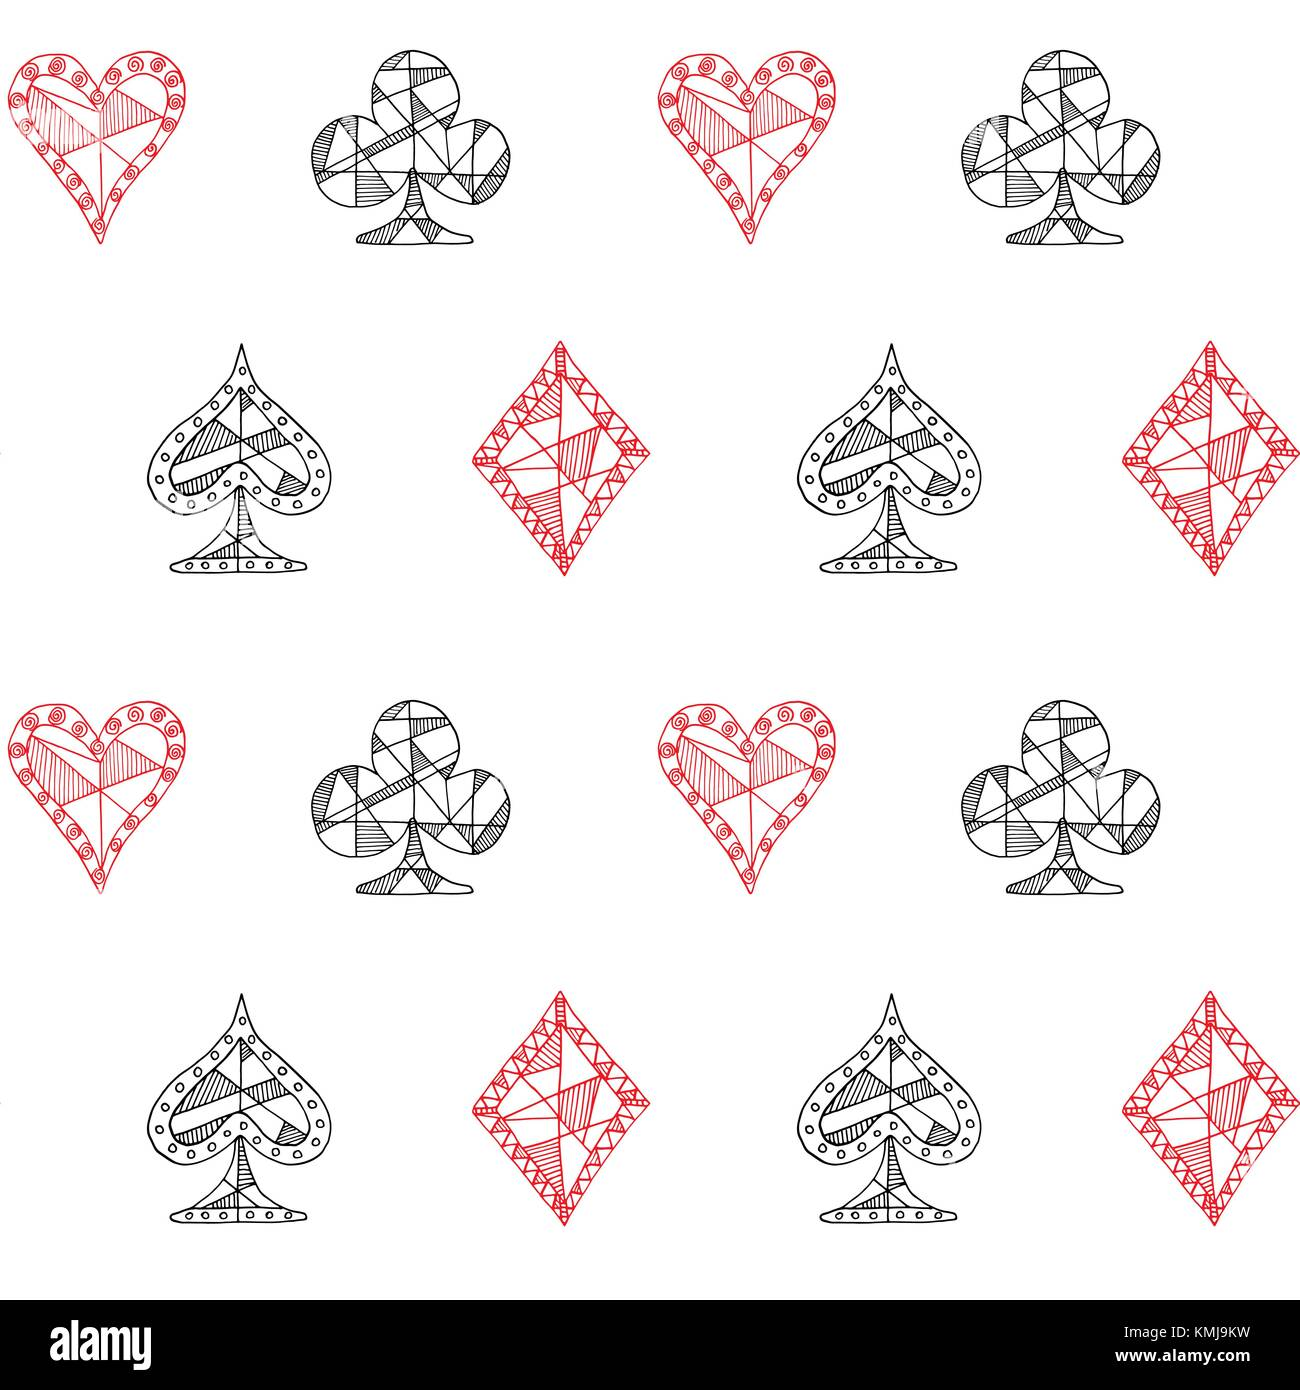 Hand Drawn Sketched Playing Cards Symbol Seamless Pattern Poker